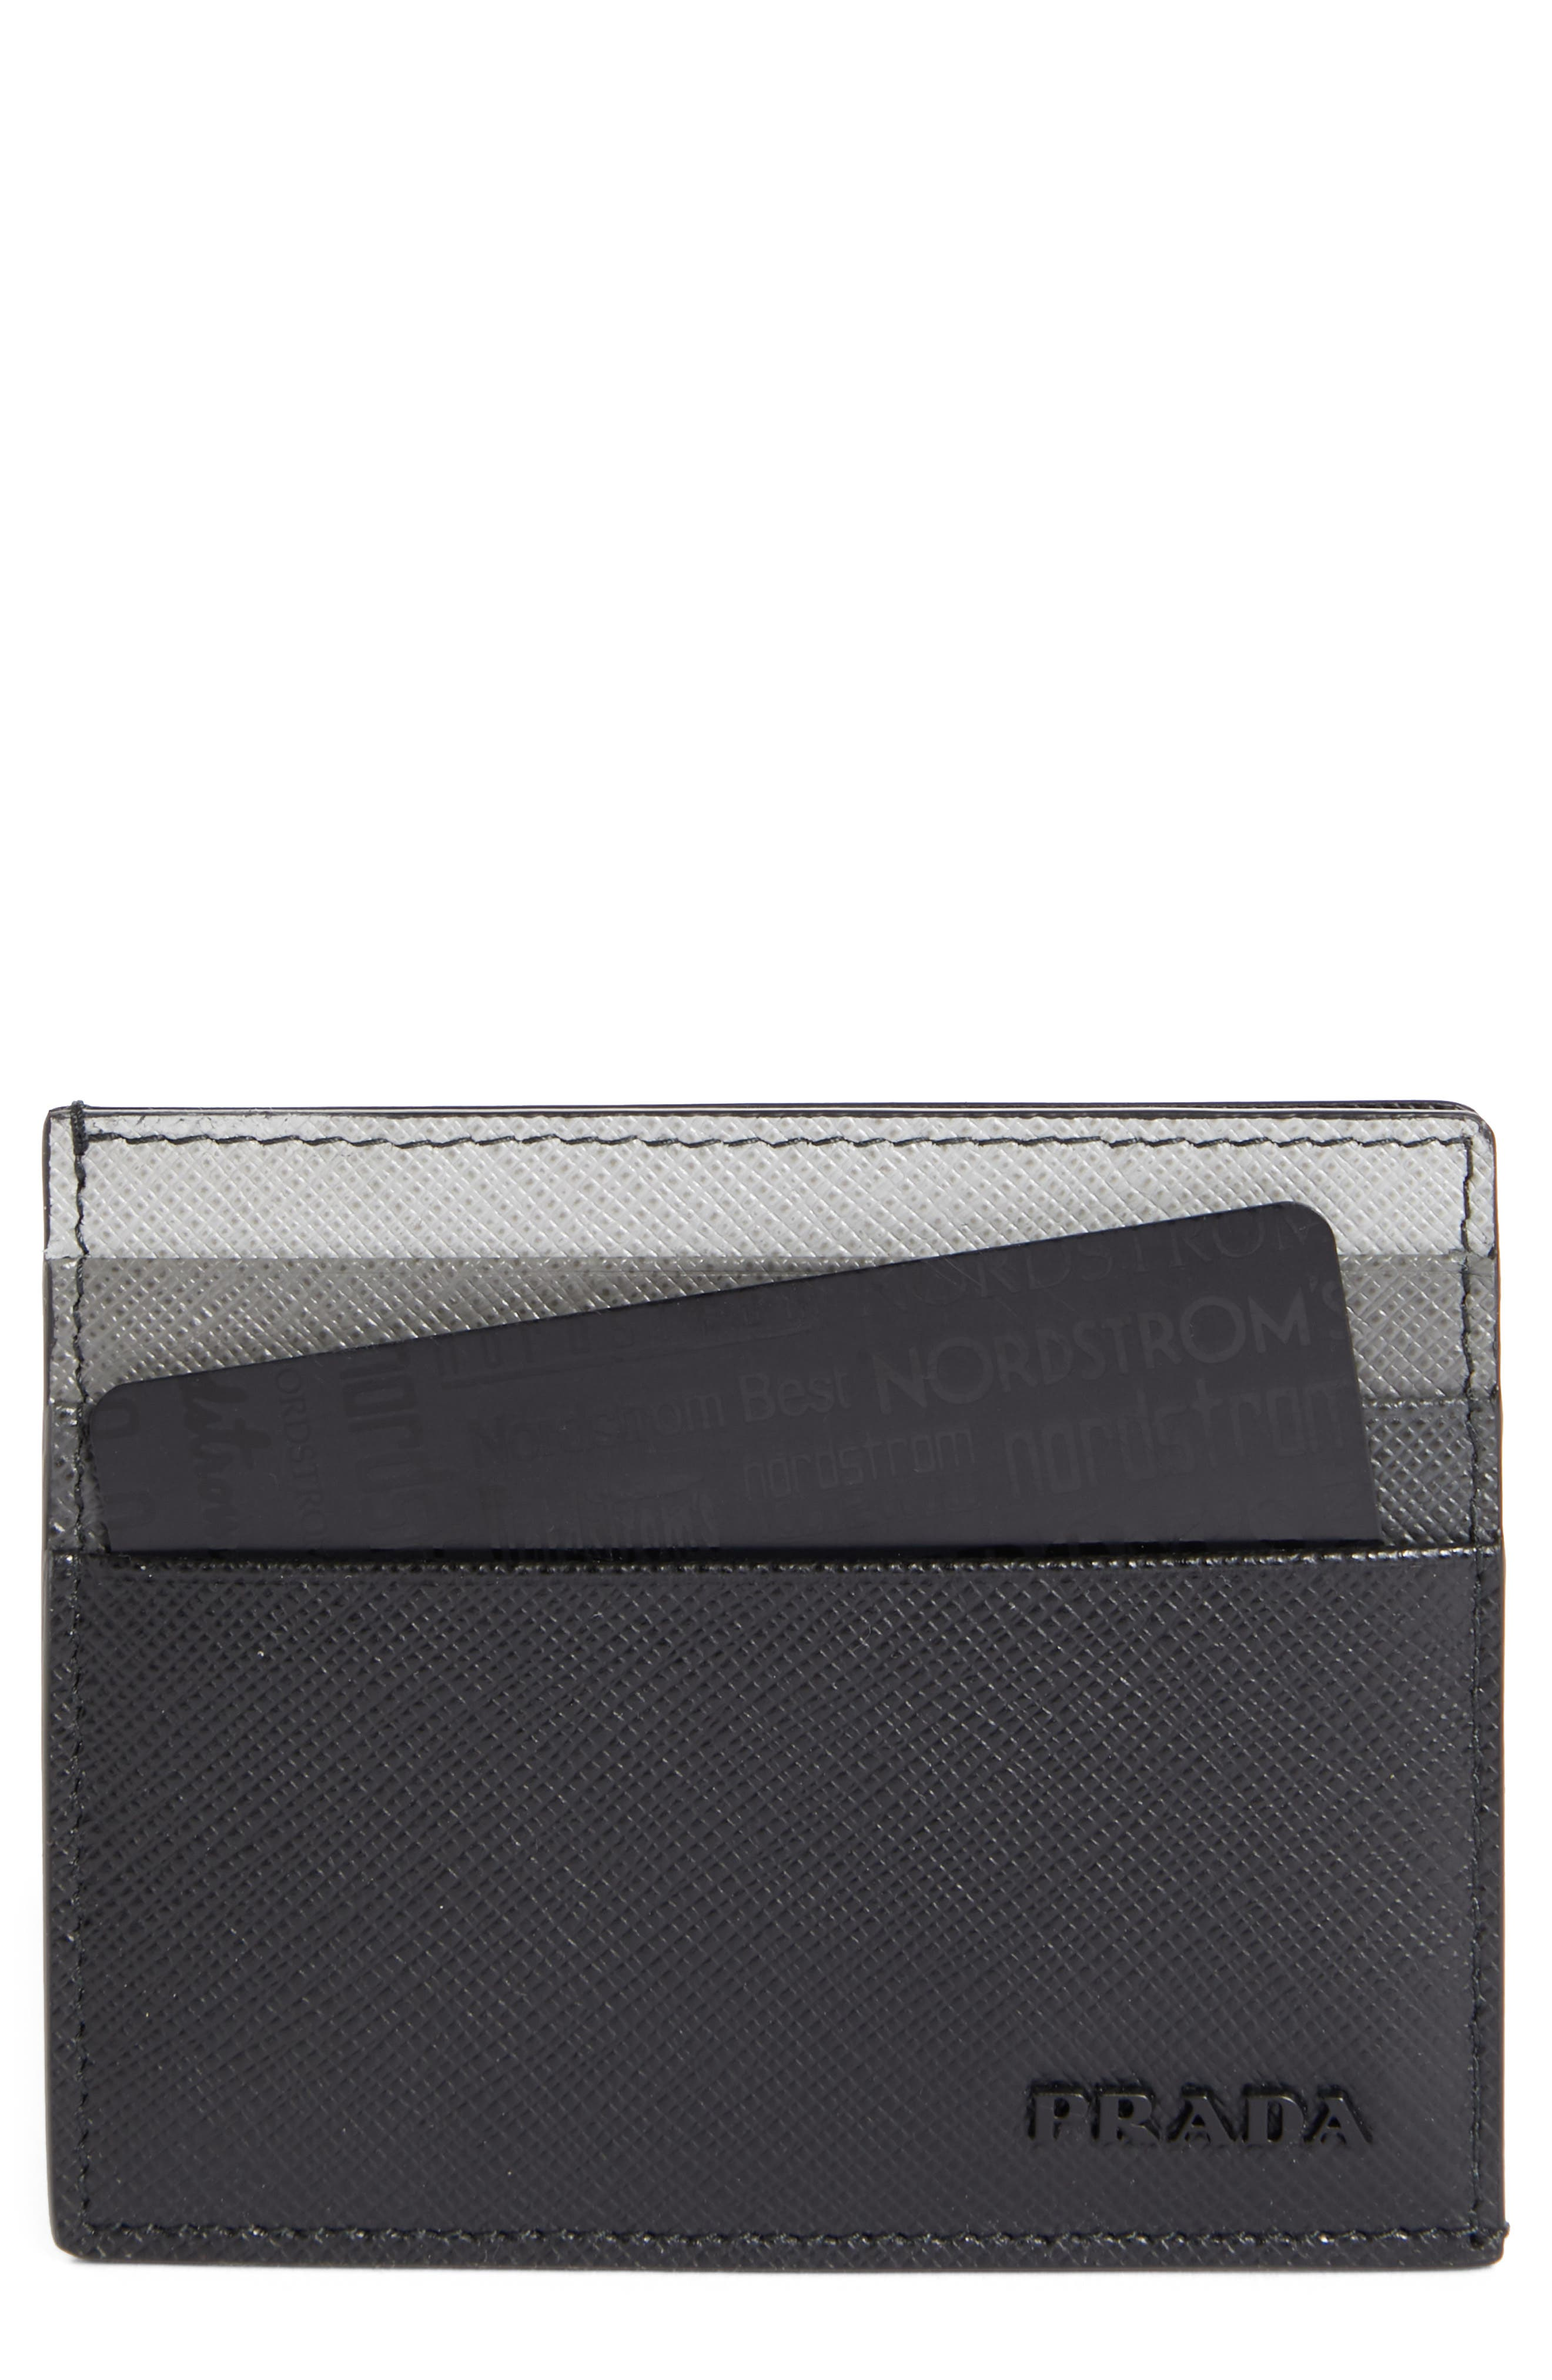 PRADA,                             Multicolor Saffiano Leather Card Case,                             Main thumbnail 1, color,                             001